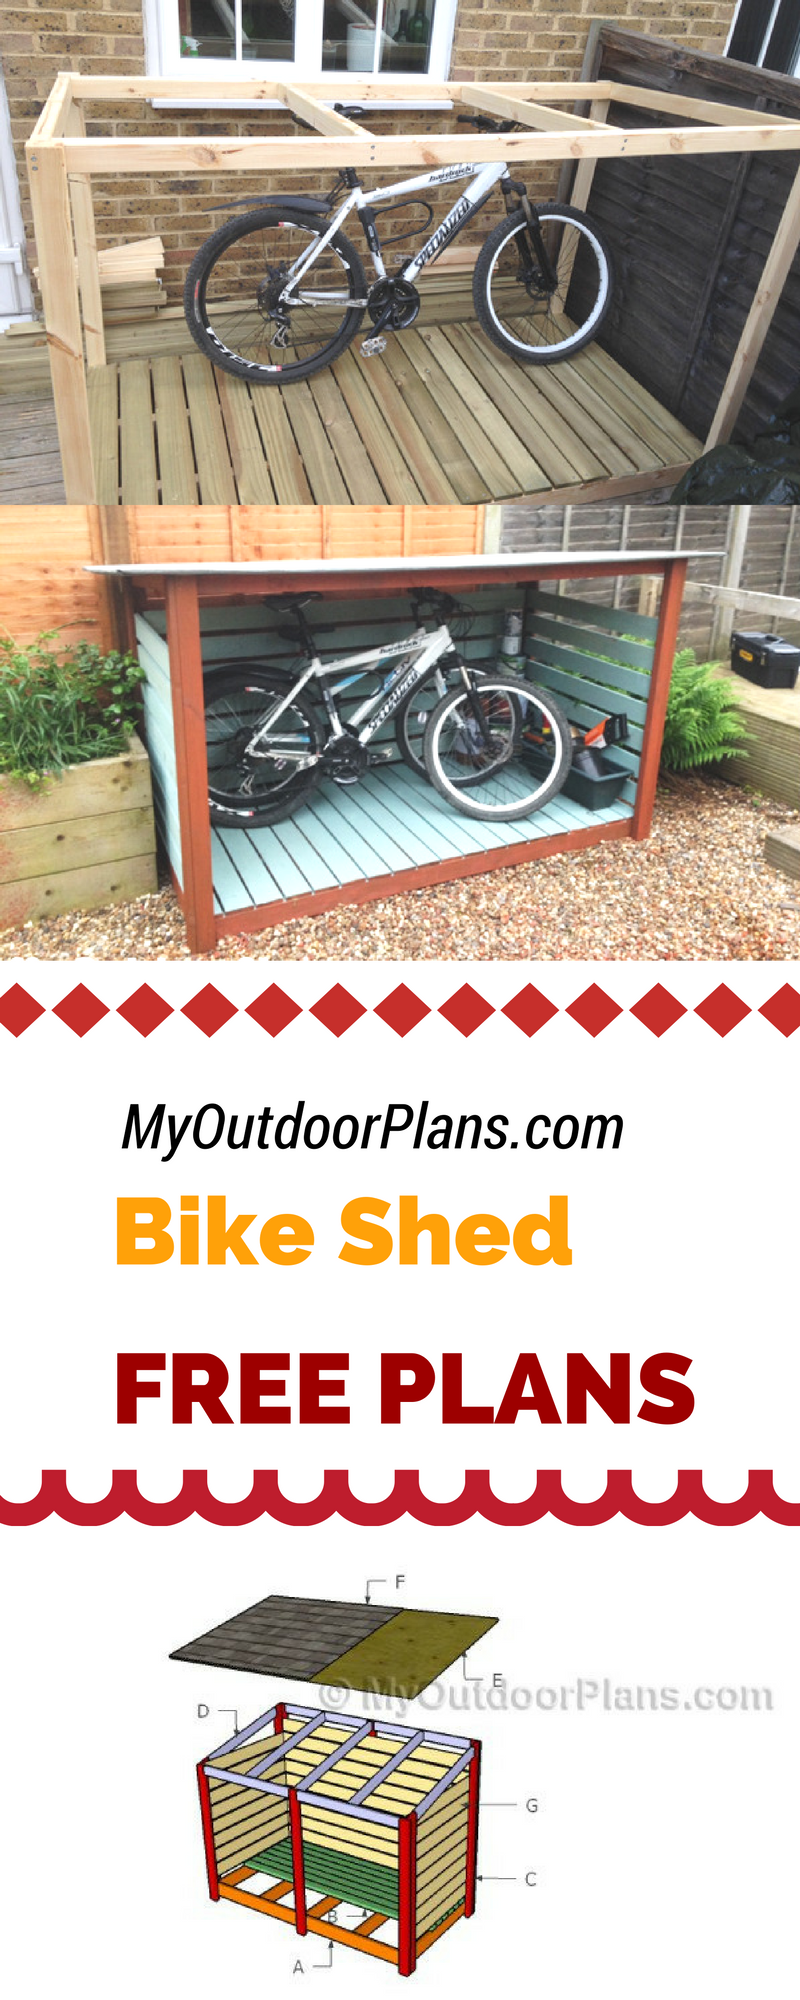 Learn how to build a bike shed using my free plans and ...